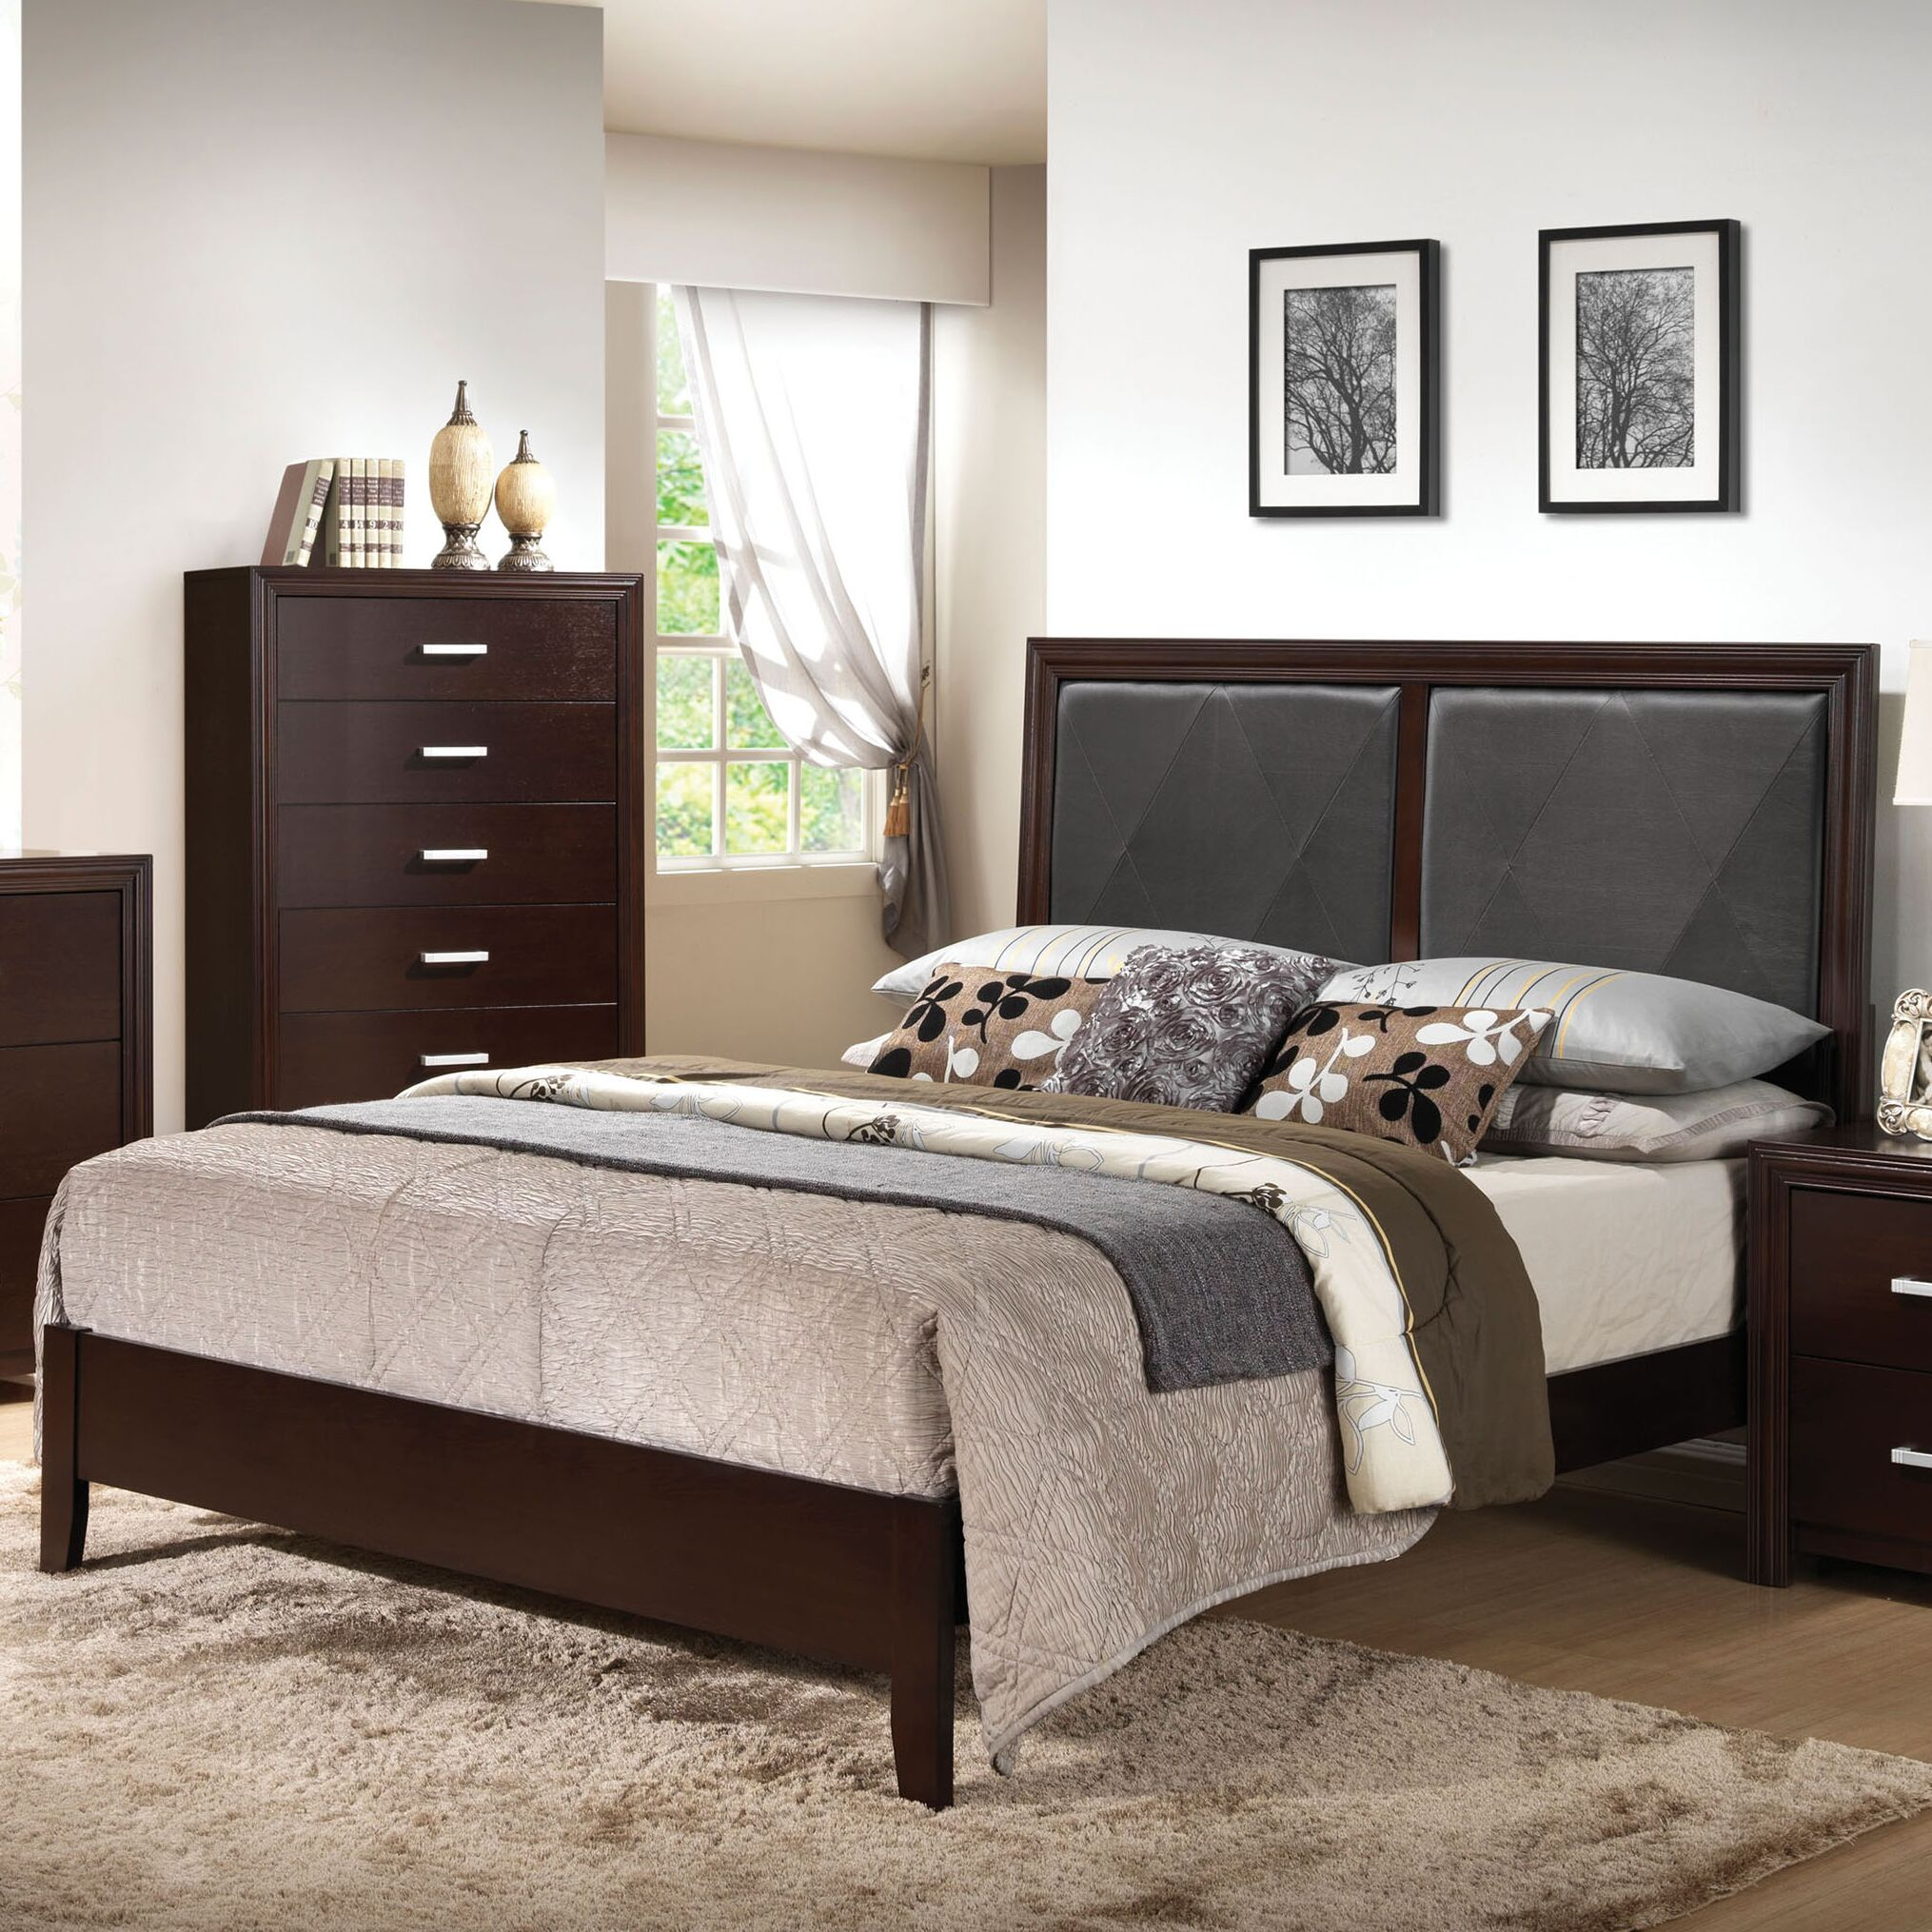 Welcher Upholstered Panel Bed Size: Queen